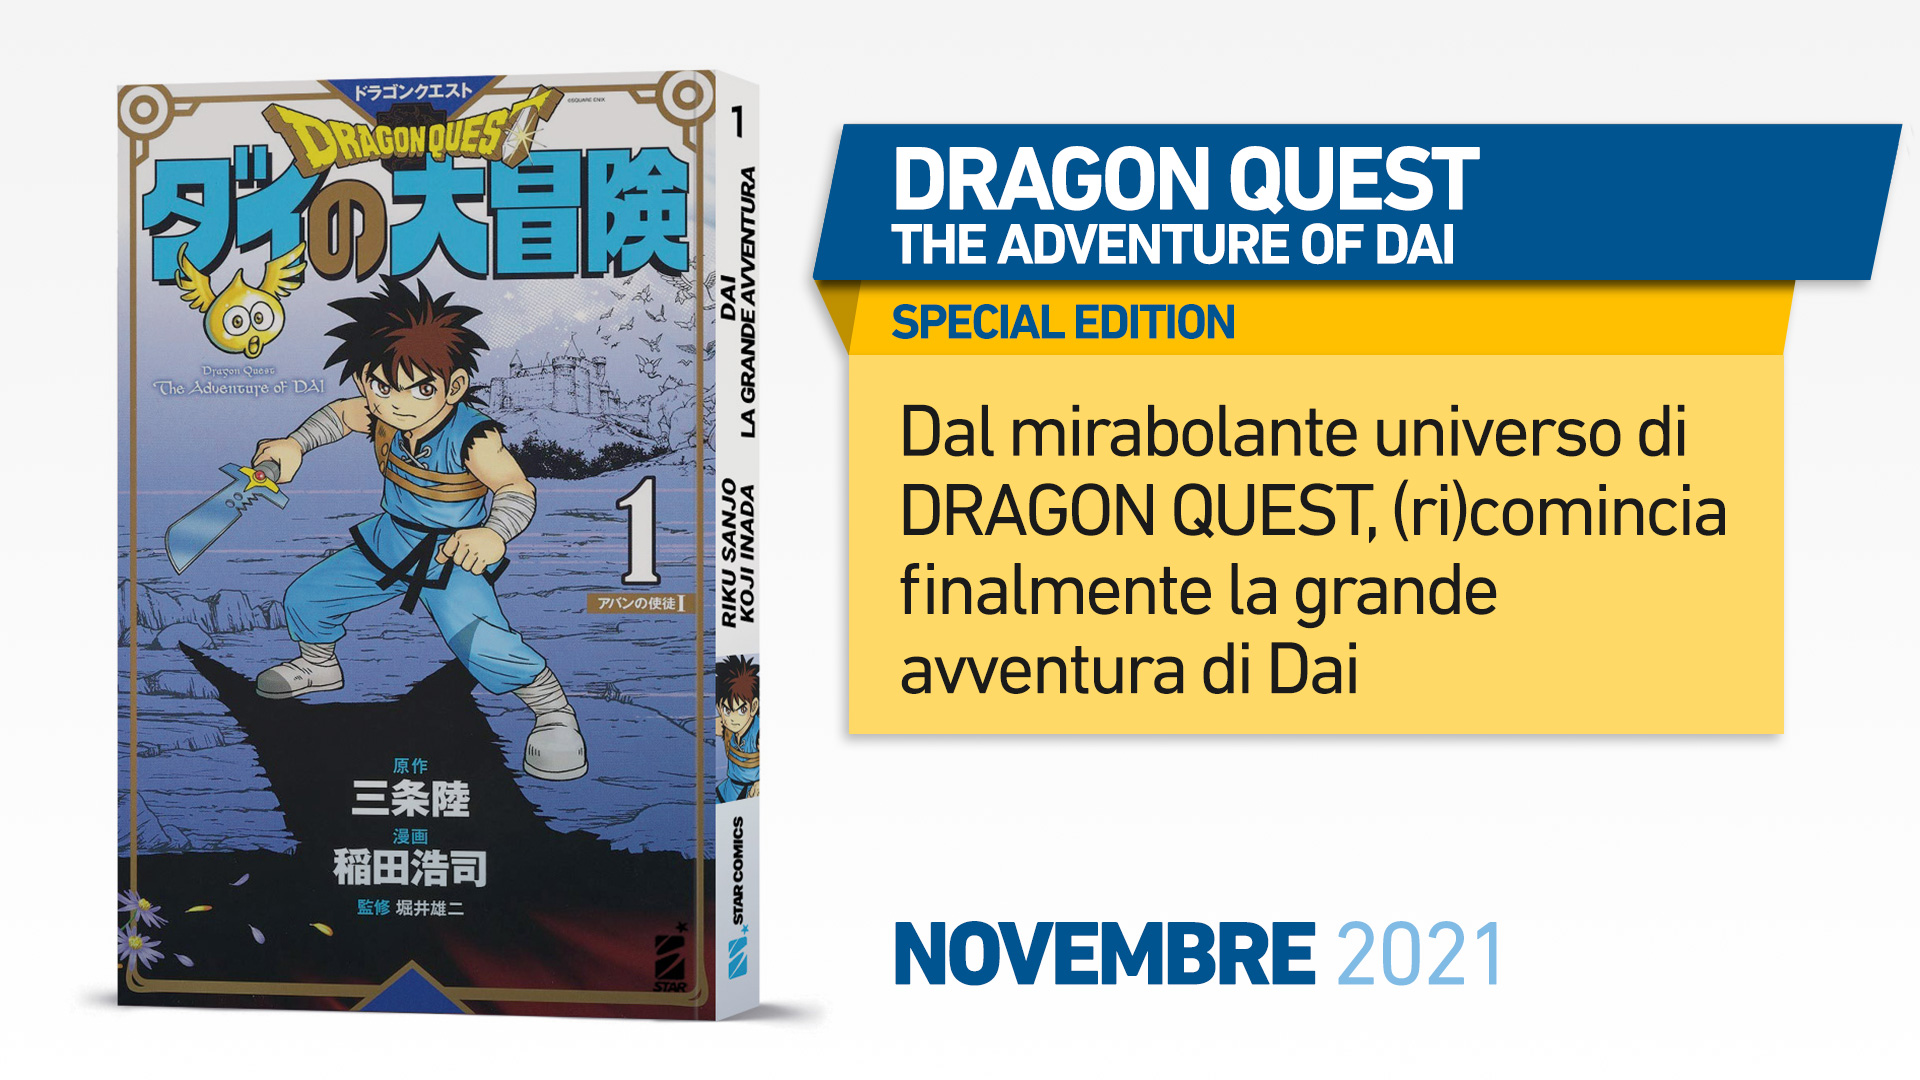 DRAGON QUEST – THE ADVENTURE OF DAI – SPECIAL EDITION